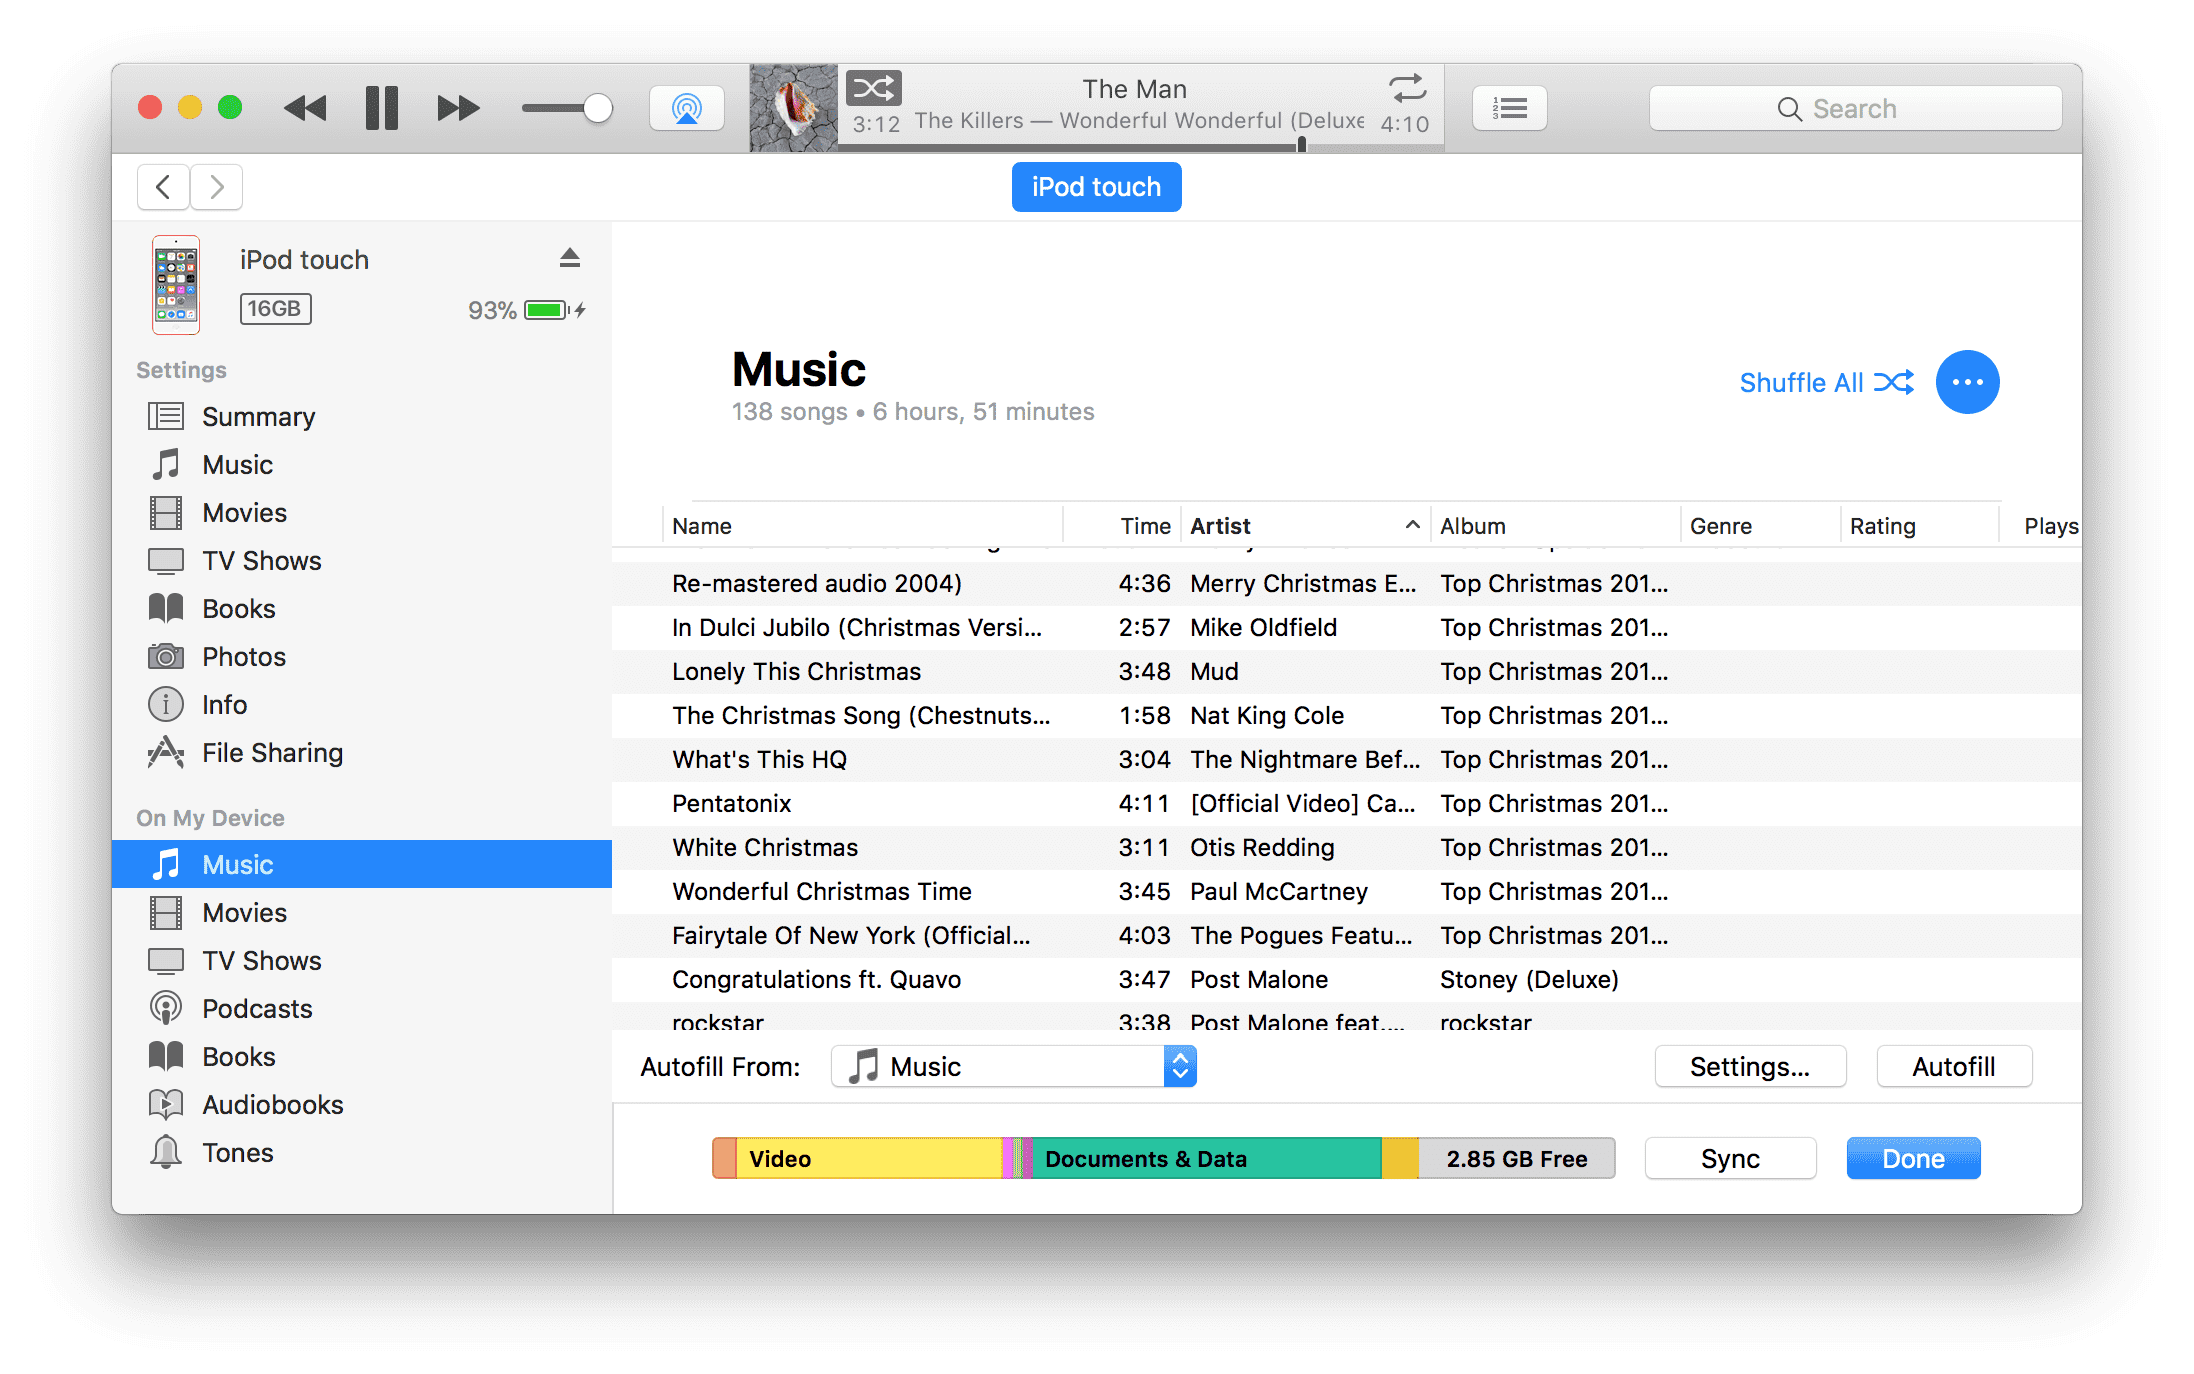 create a custom playlist in iTunes and sync it